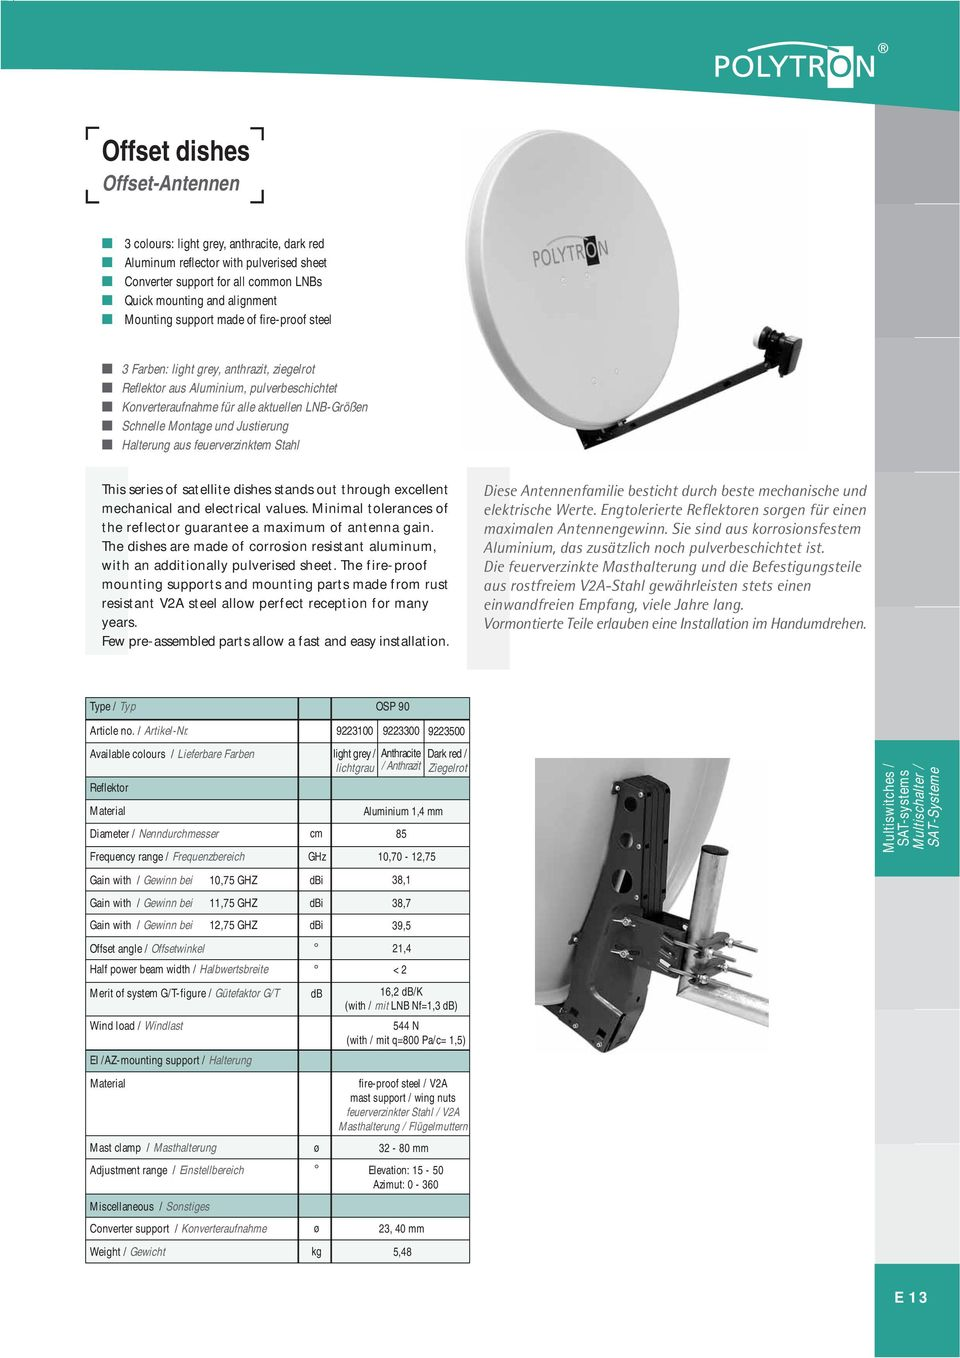 aus feuerverzinktem Stahl This series of satellite dishes stands out through excellent mechanical and electrical values. Minimal tolerances of the reflector guarantee a maximum of antenna gain.